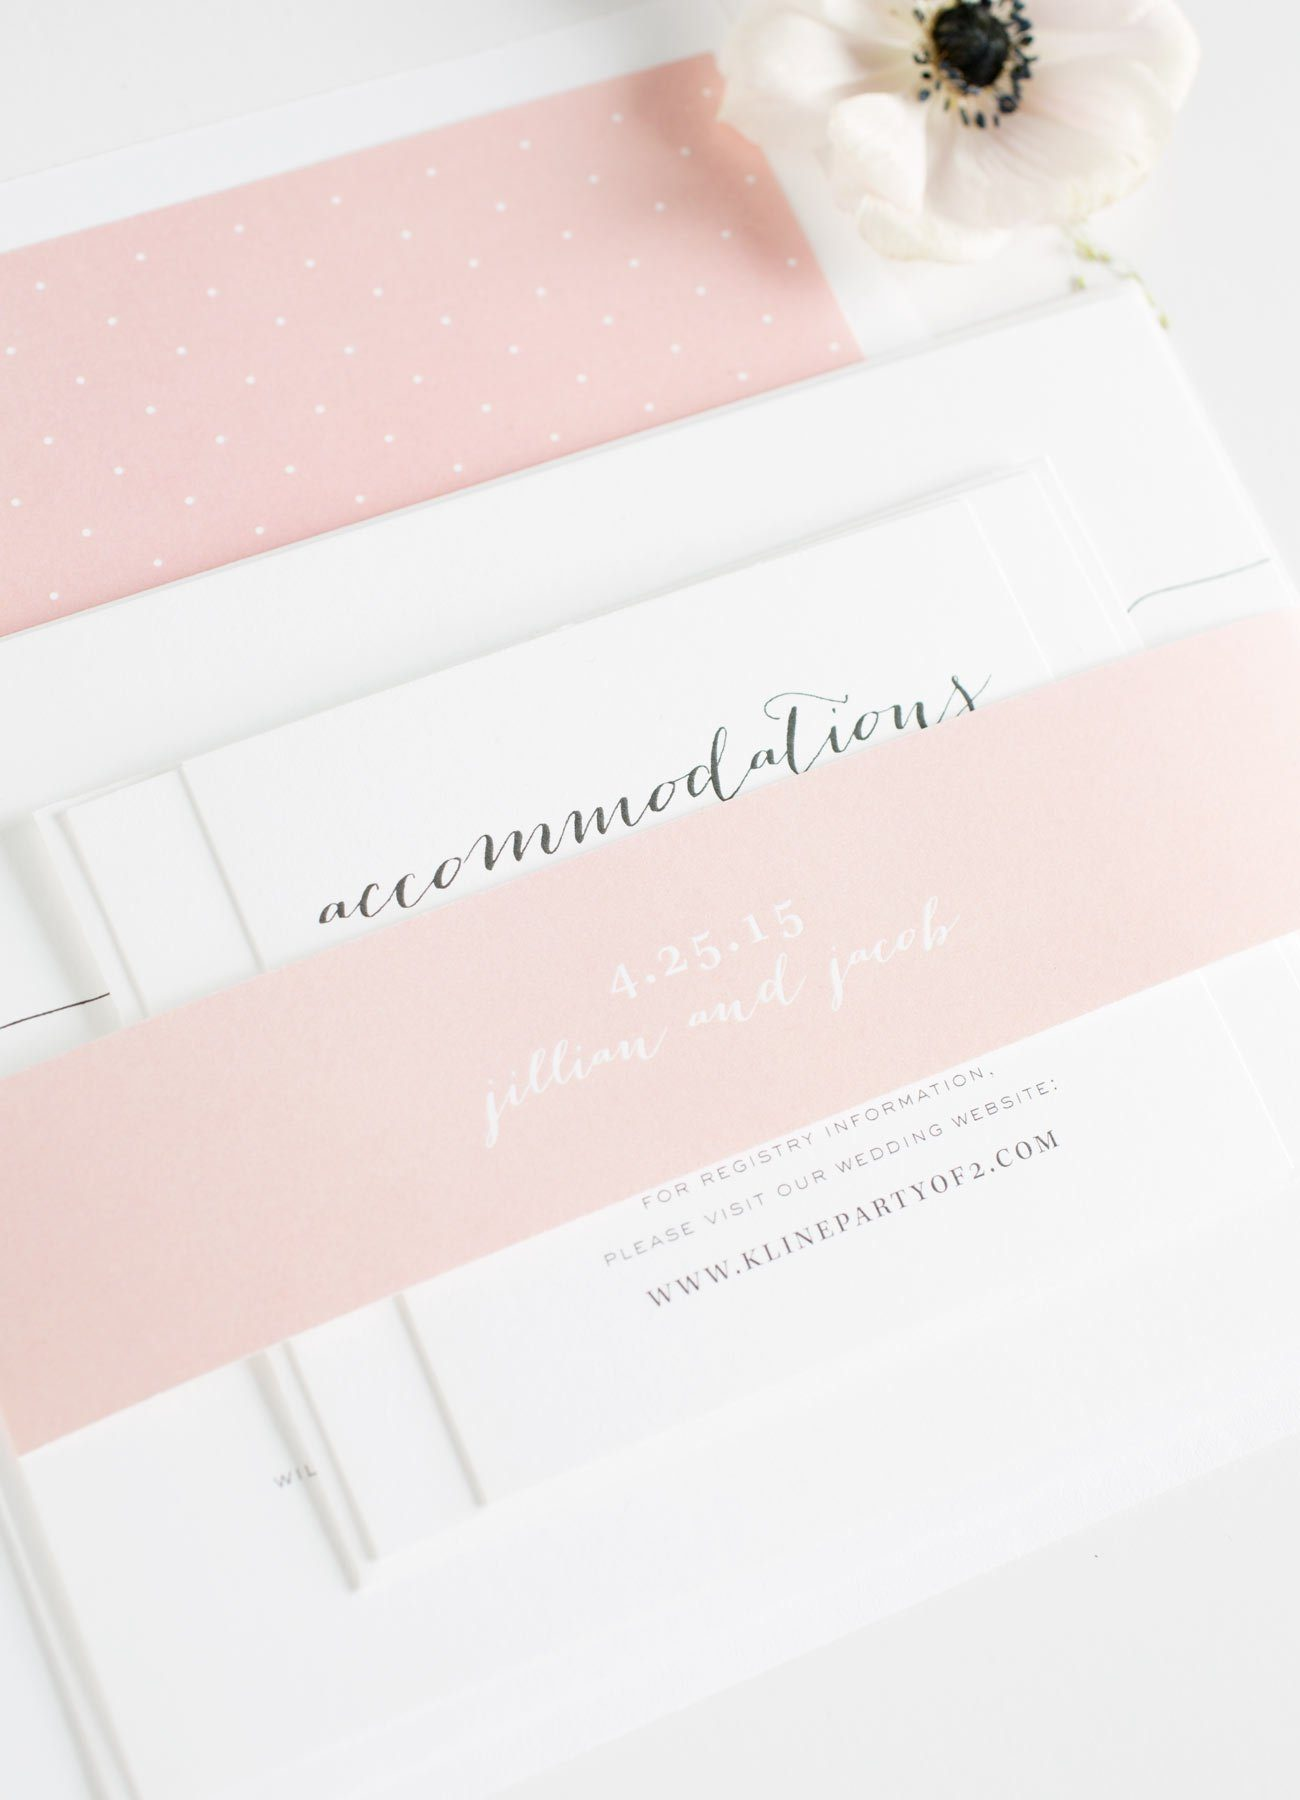 Romantic Wedding Invitations with a polk dot envelope liner and gorgeous calligraphy